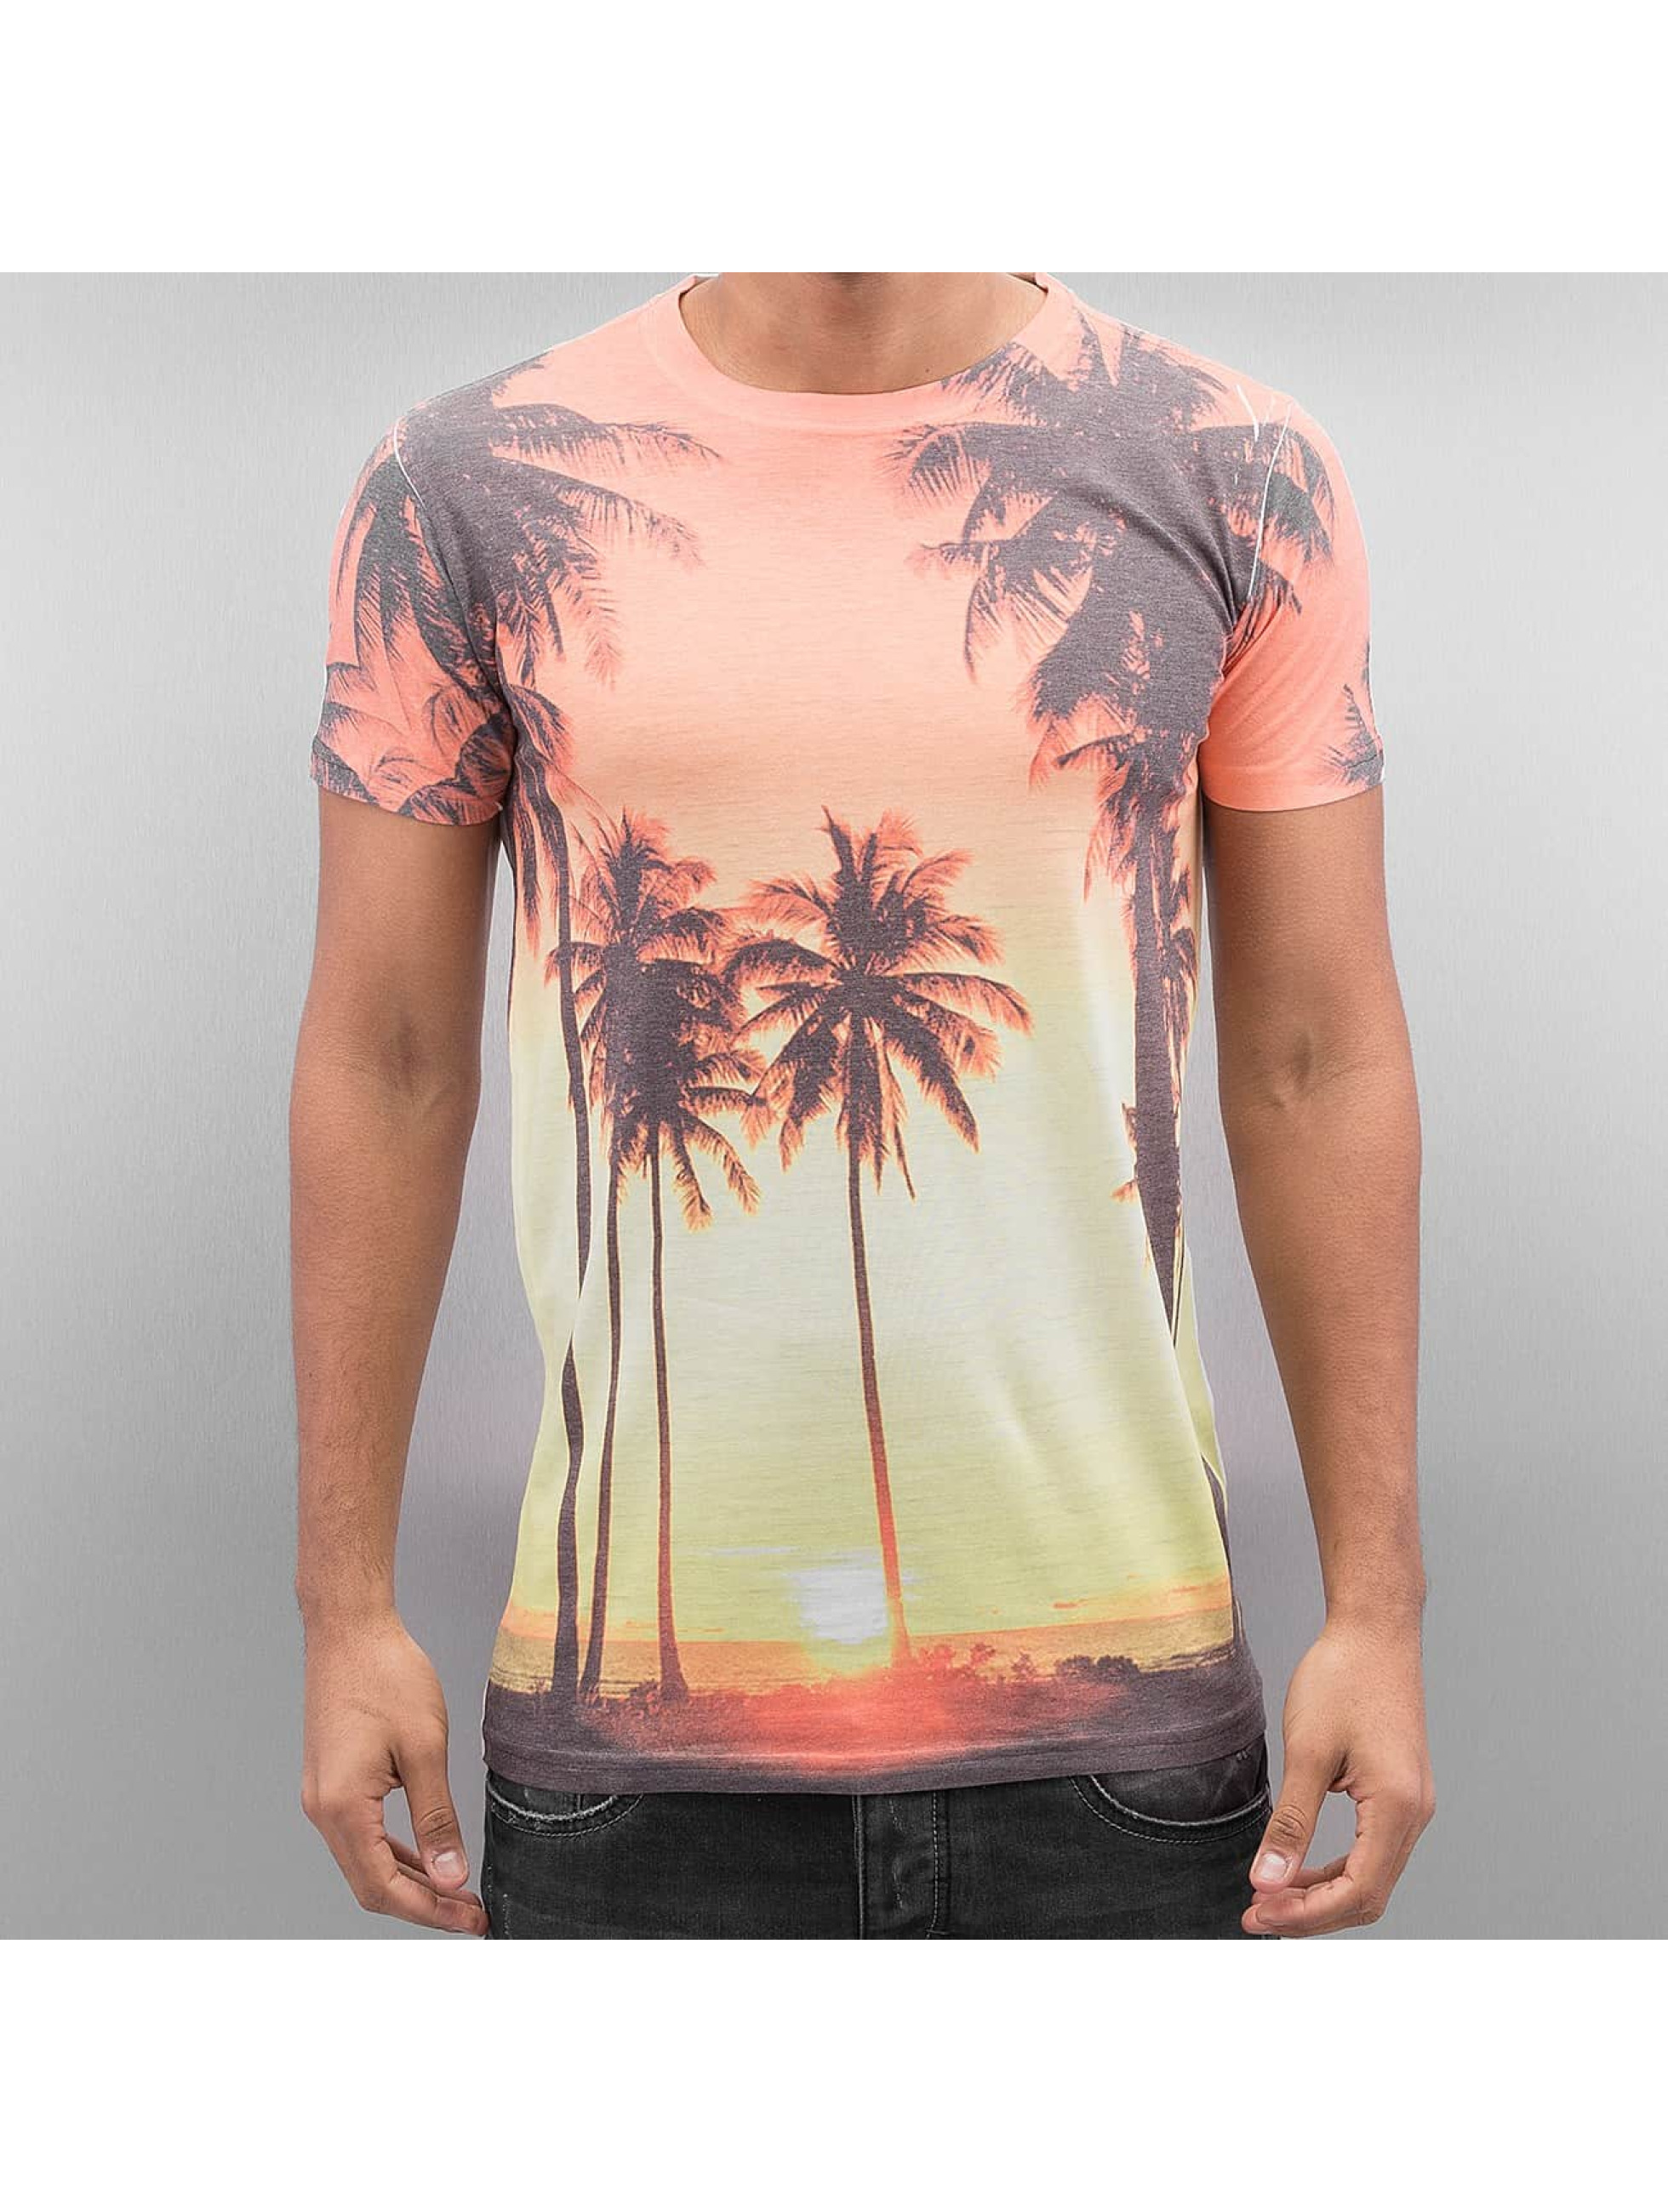 T-Shirt Palms in bunt